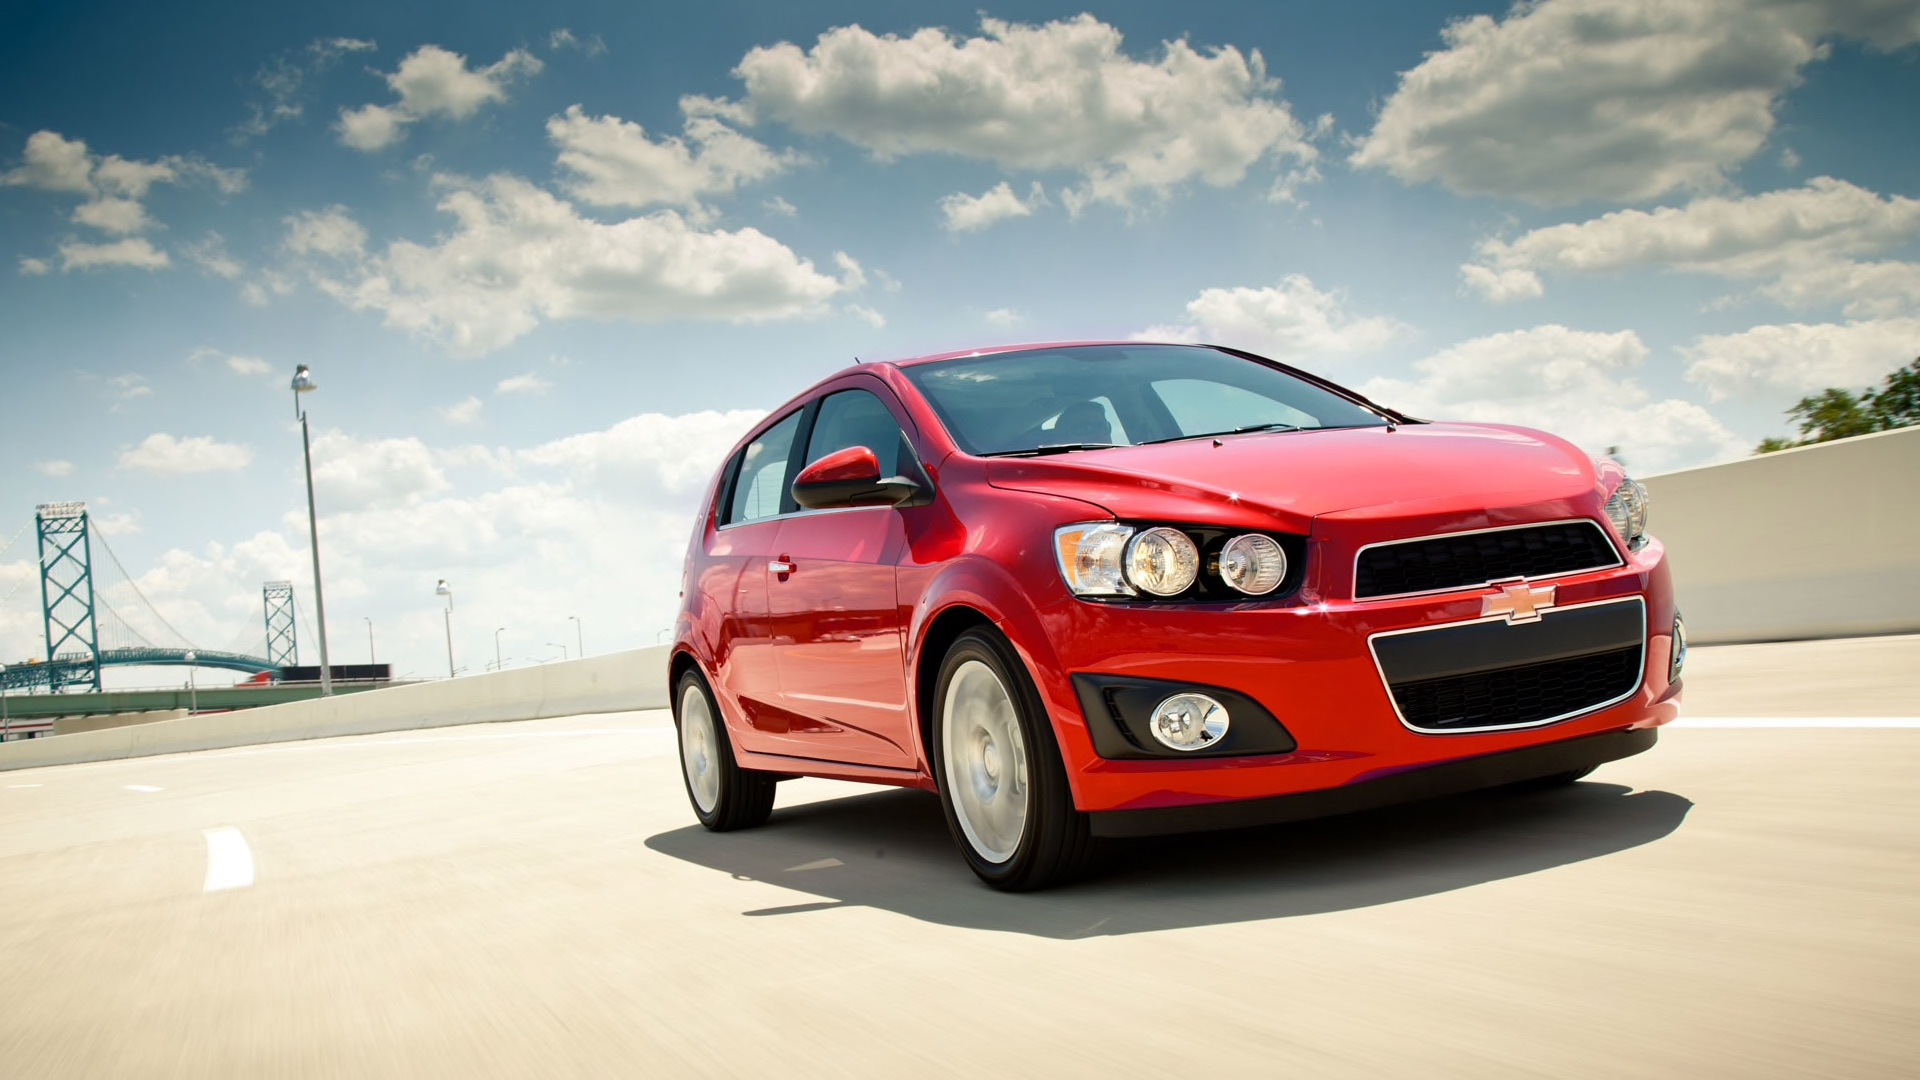 Chevrolet Sonic Repair Manual: Rear Seat Cushion Cover and Pad Replacement